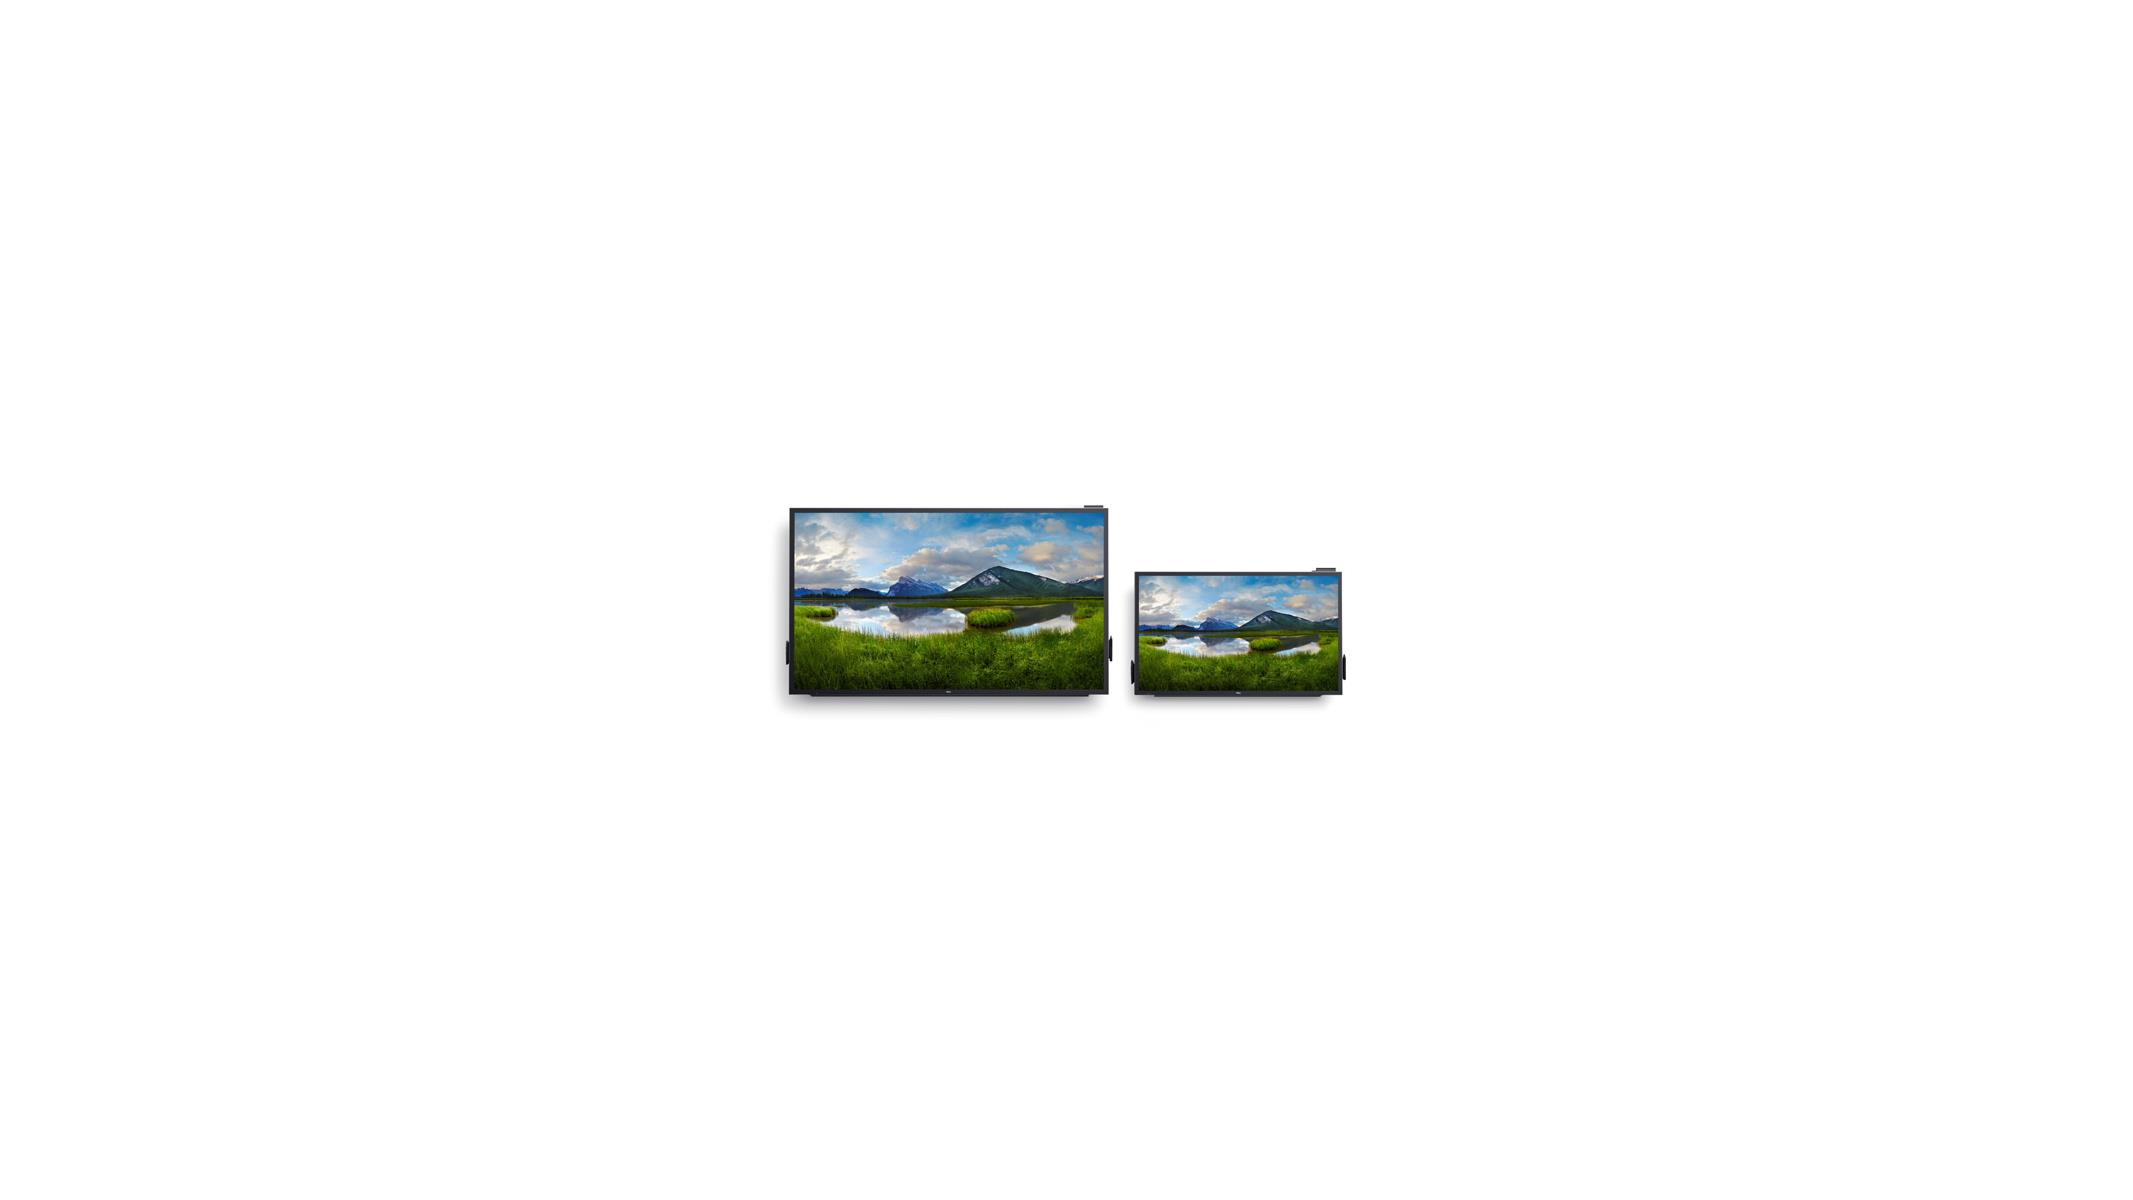 2d4d04d0de99 Dell Launches 86- And 55-inch 4K Interactive Touch Monitors For Education  And Business | HotHardware